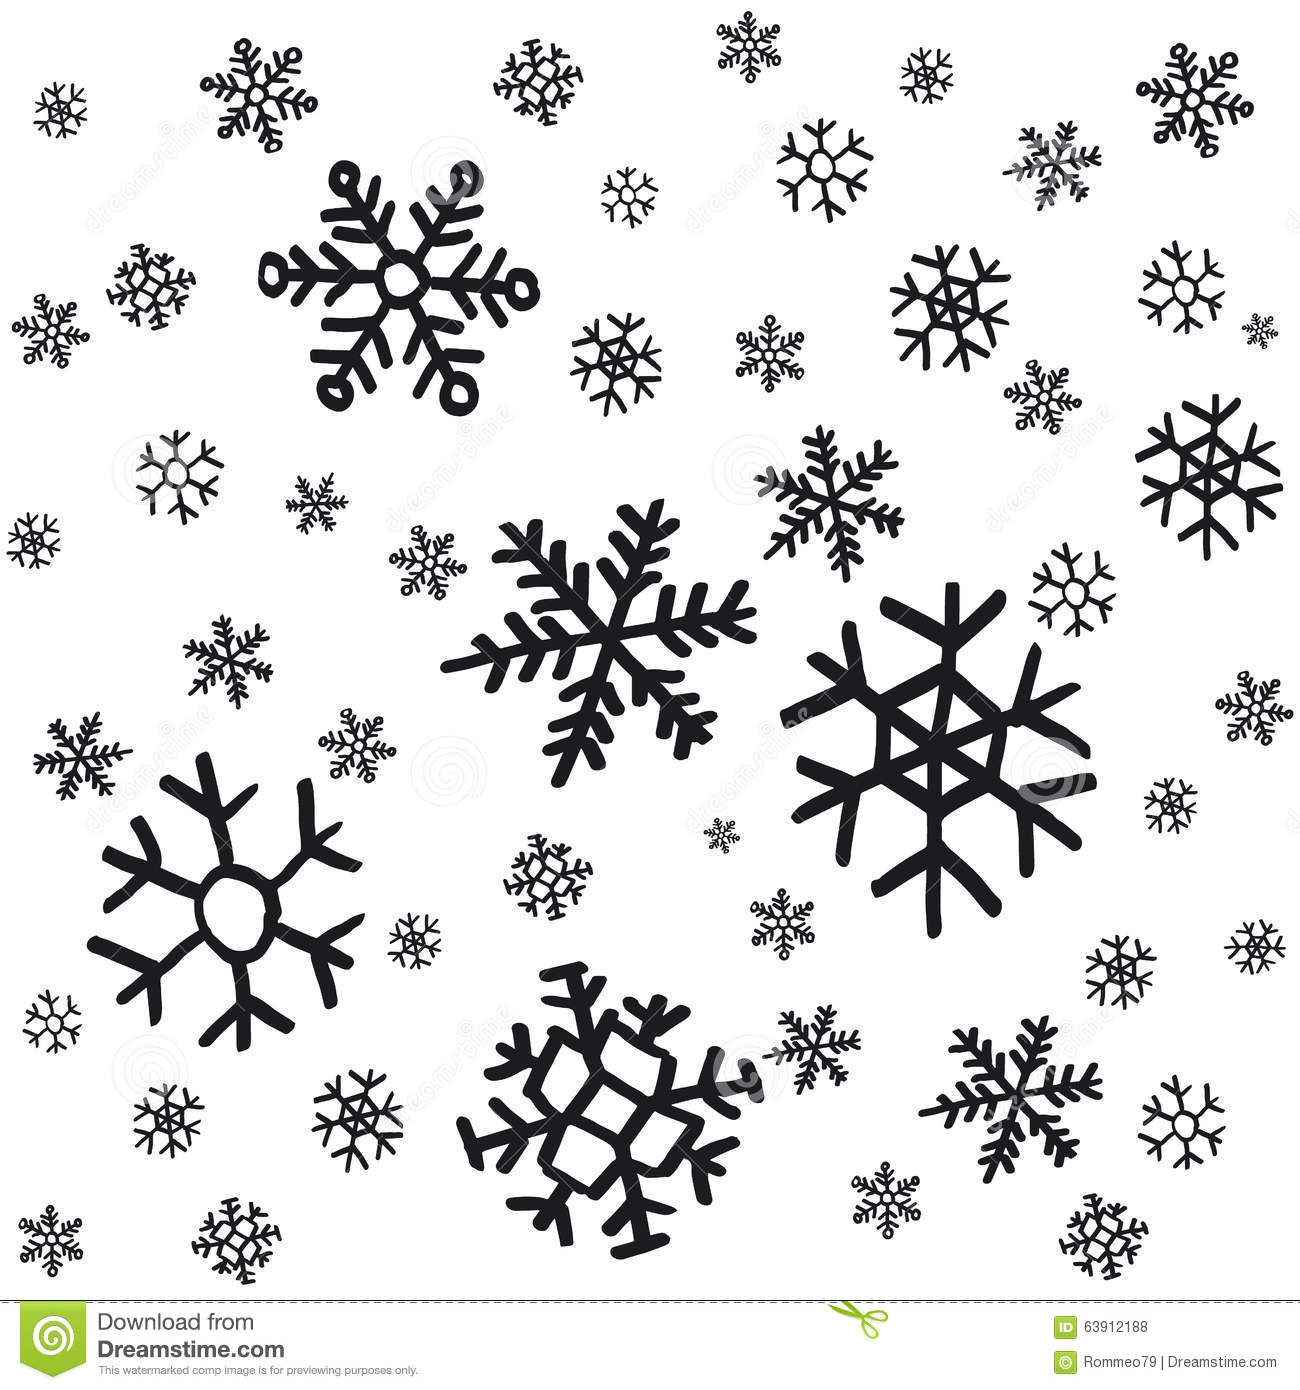 Hand drawn snowflakes christmas ornaments made from